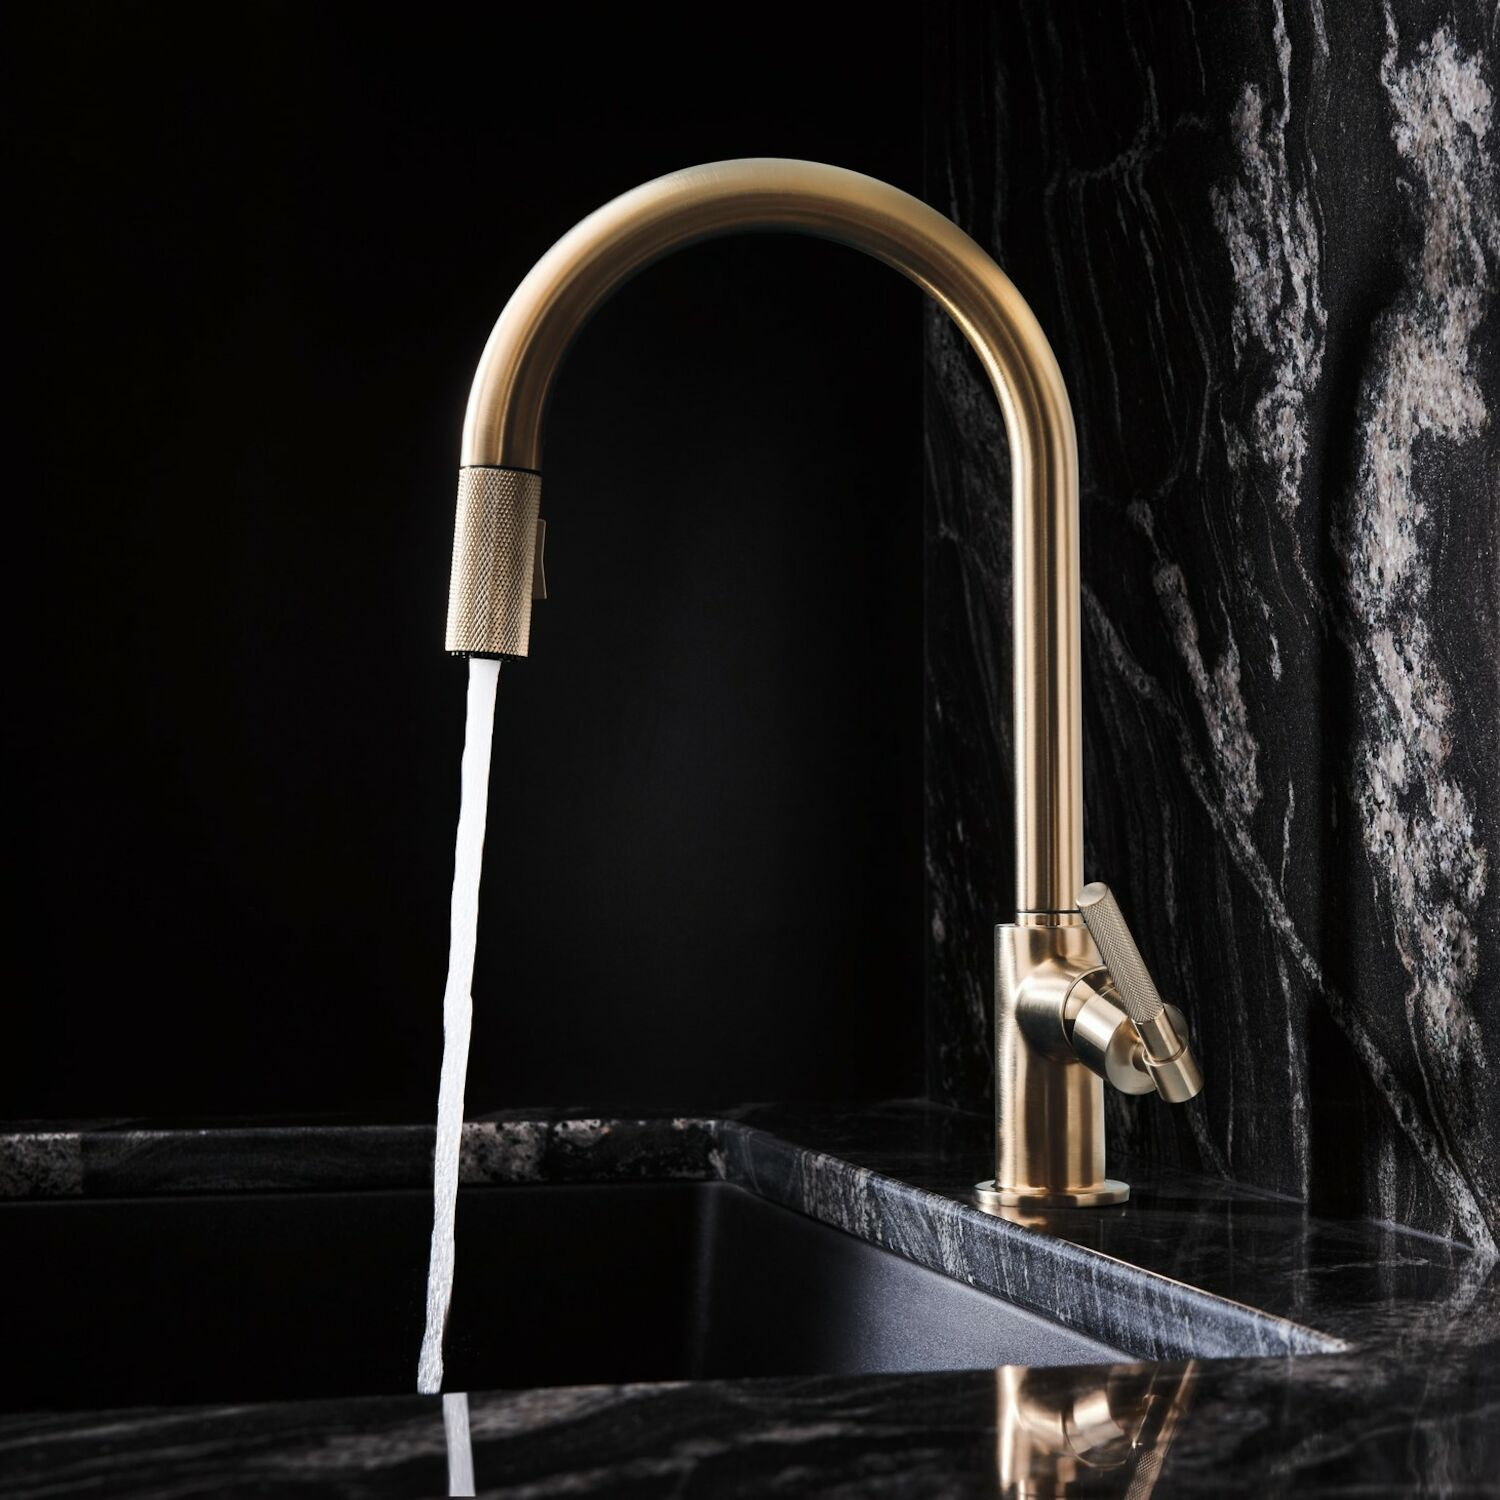 litze pull down faucet with arc spout and knurled handle